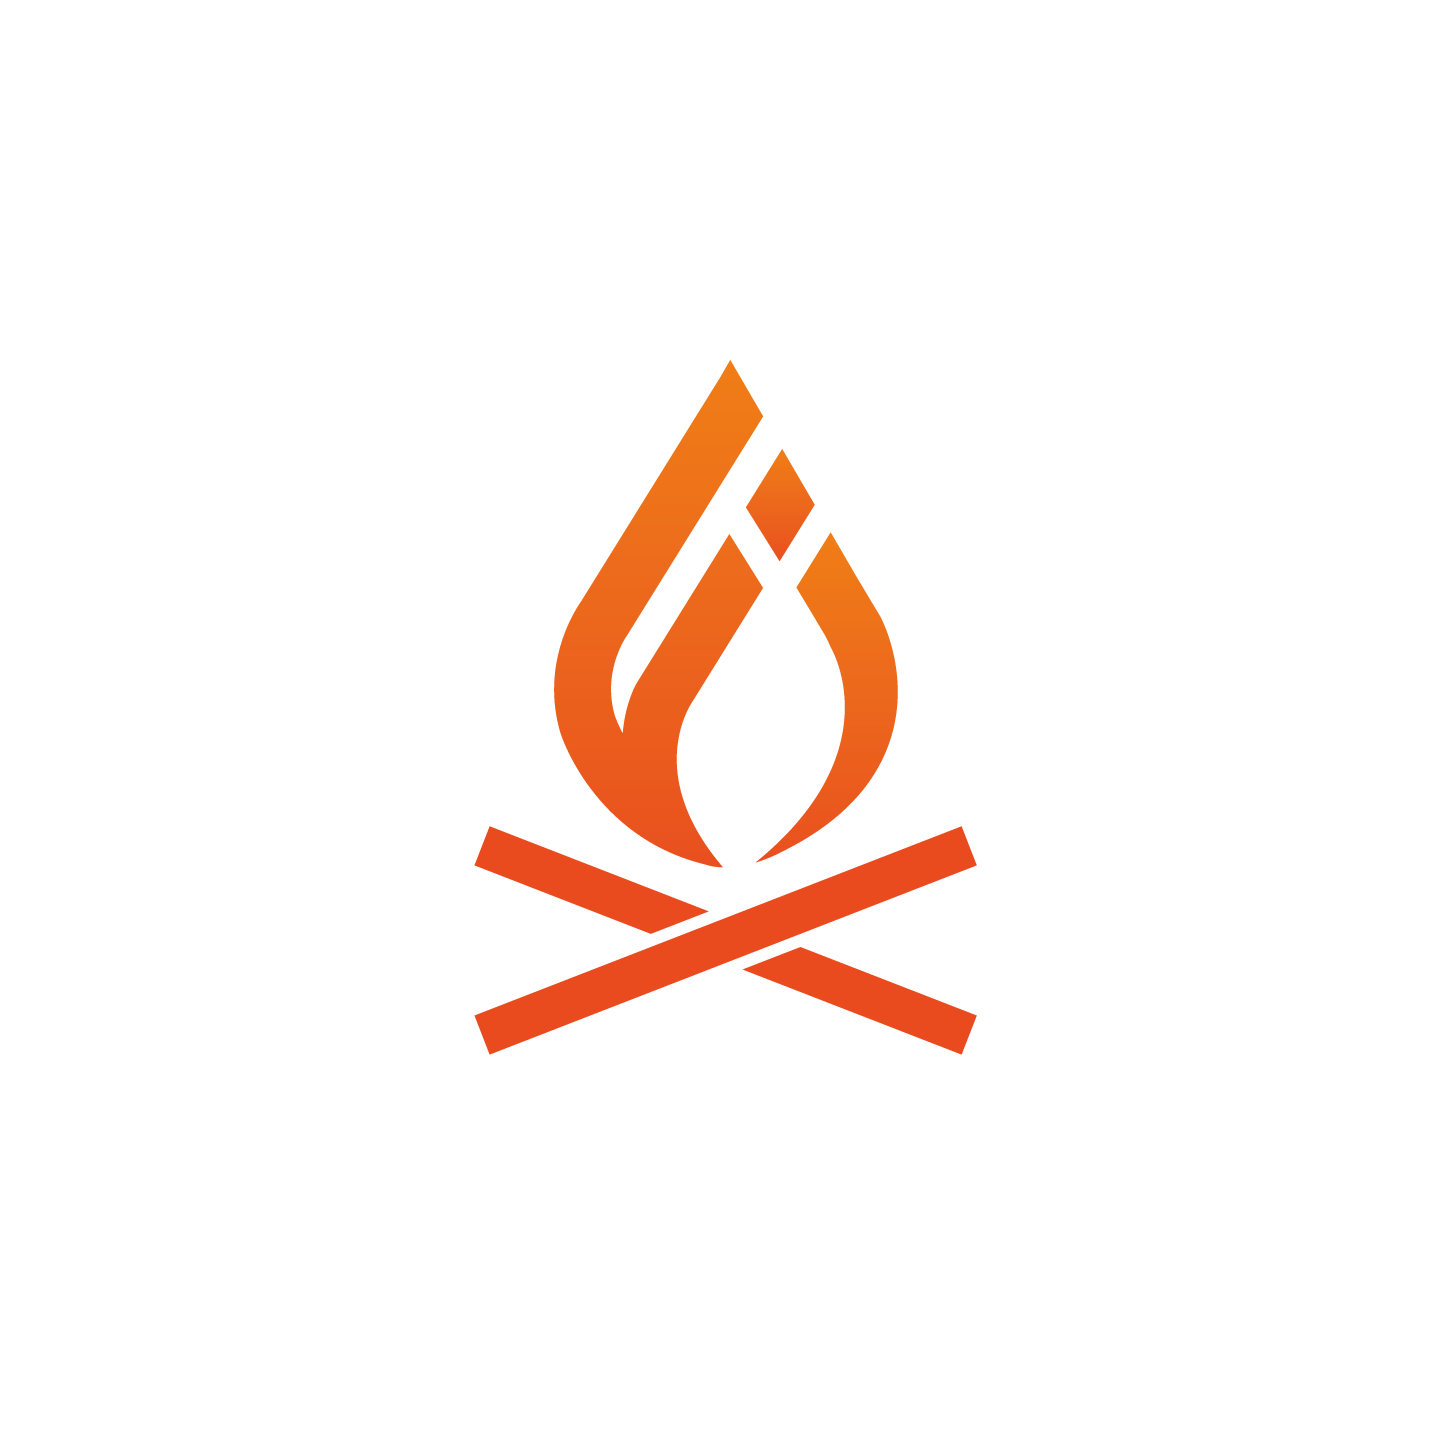 The Fireside Journal